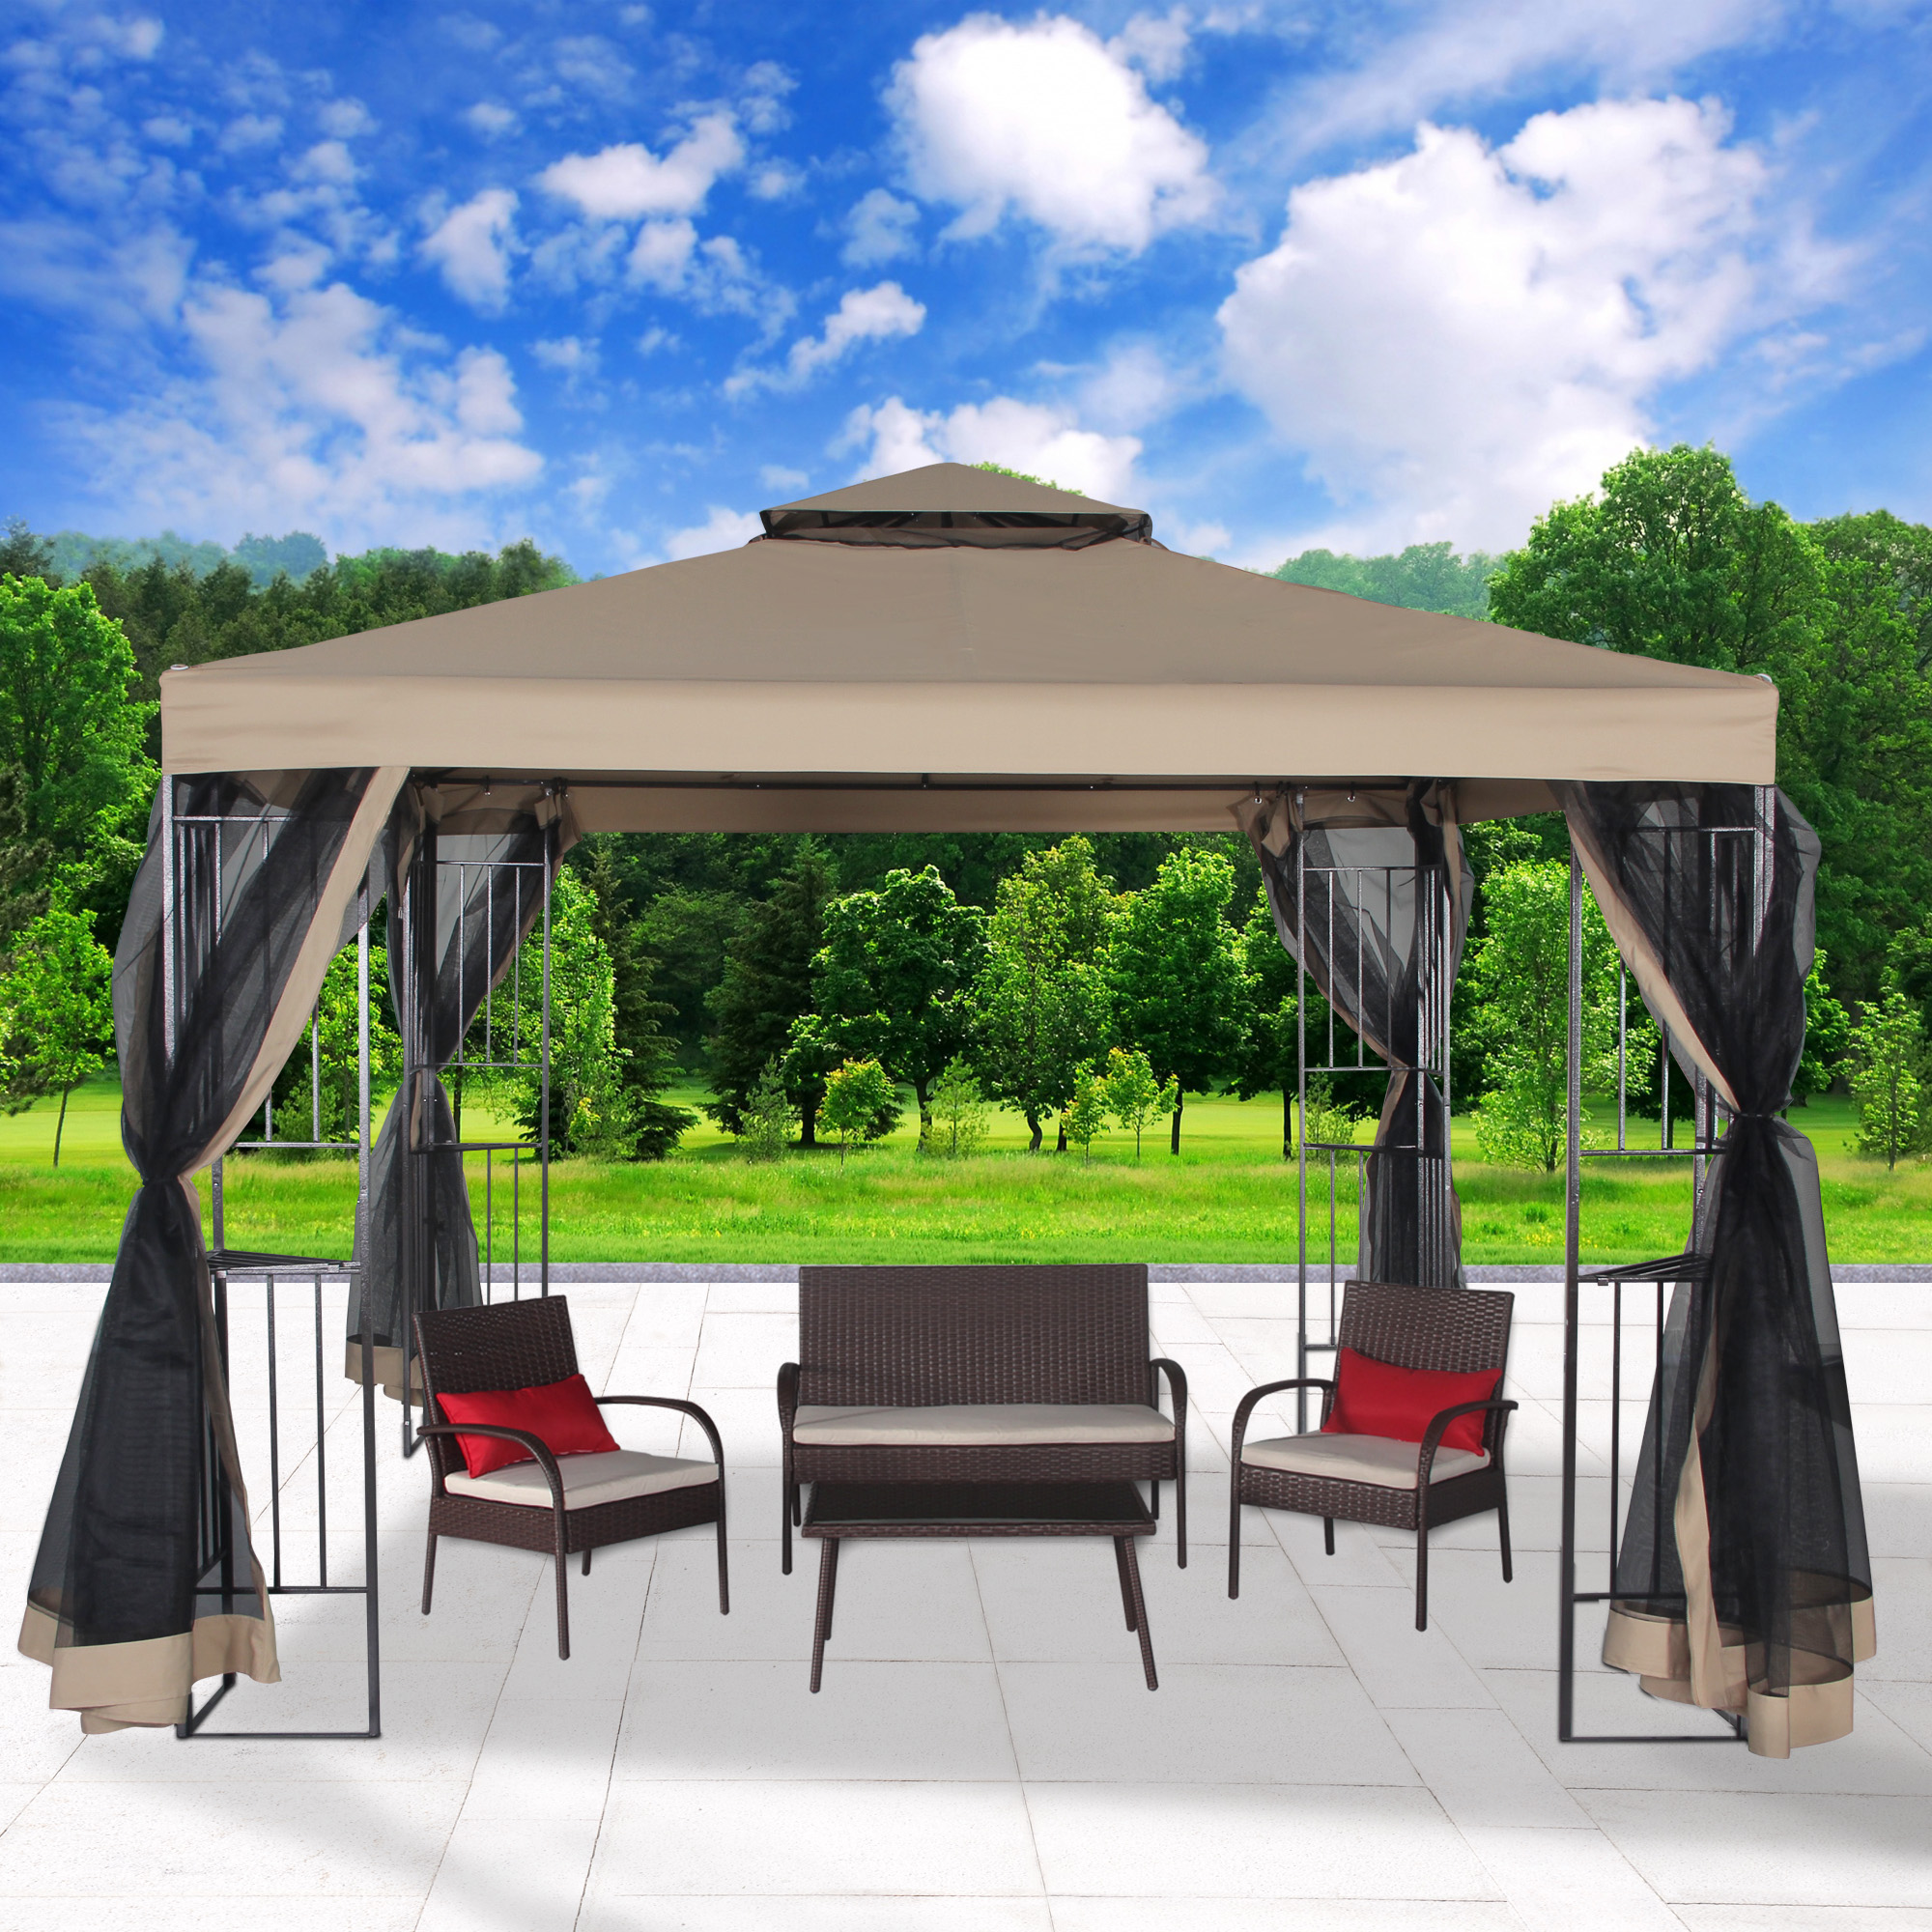 Cloud Mountain Garden Gazebo Polyester Fabric 10u0027 x 10u0027 Patio Backyard Double Roof Vented & Cloud Mountain Garden Gazebo Polyester Fabric 10u0027 x 10u0027 Patio ...